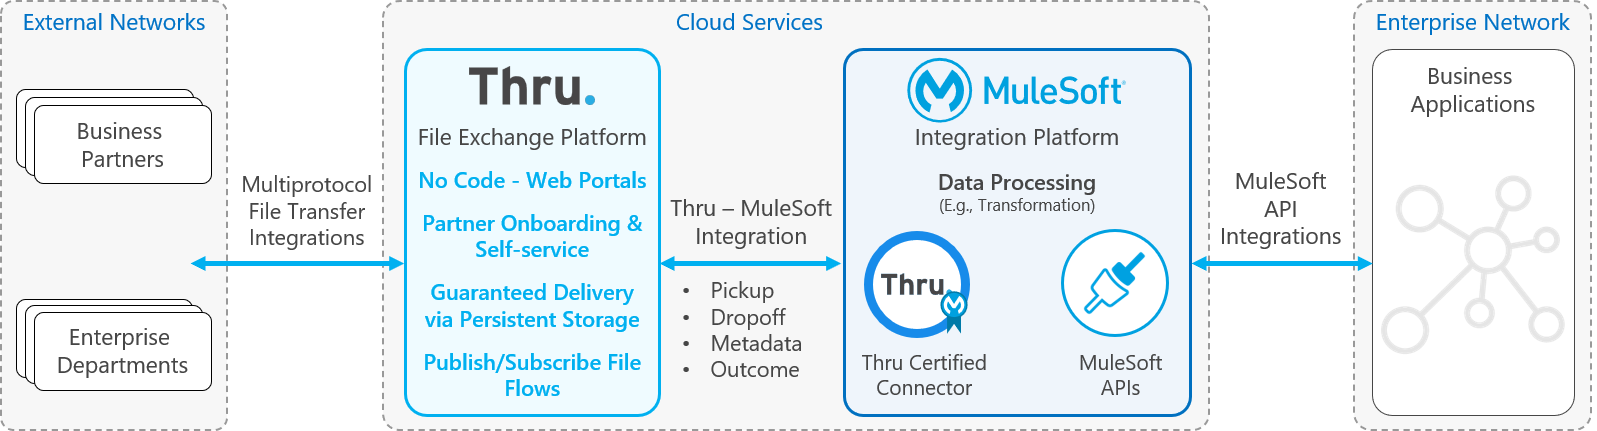 resources/2020-10-15%20Diagram%20for%20Thru%20Connector%20for%20MuleSoft%20page-e2c99ef1-fc9b-491f-bdf8-4cb74c9f2cbc.png